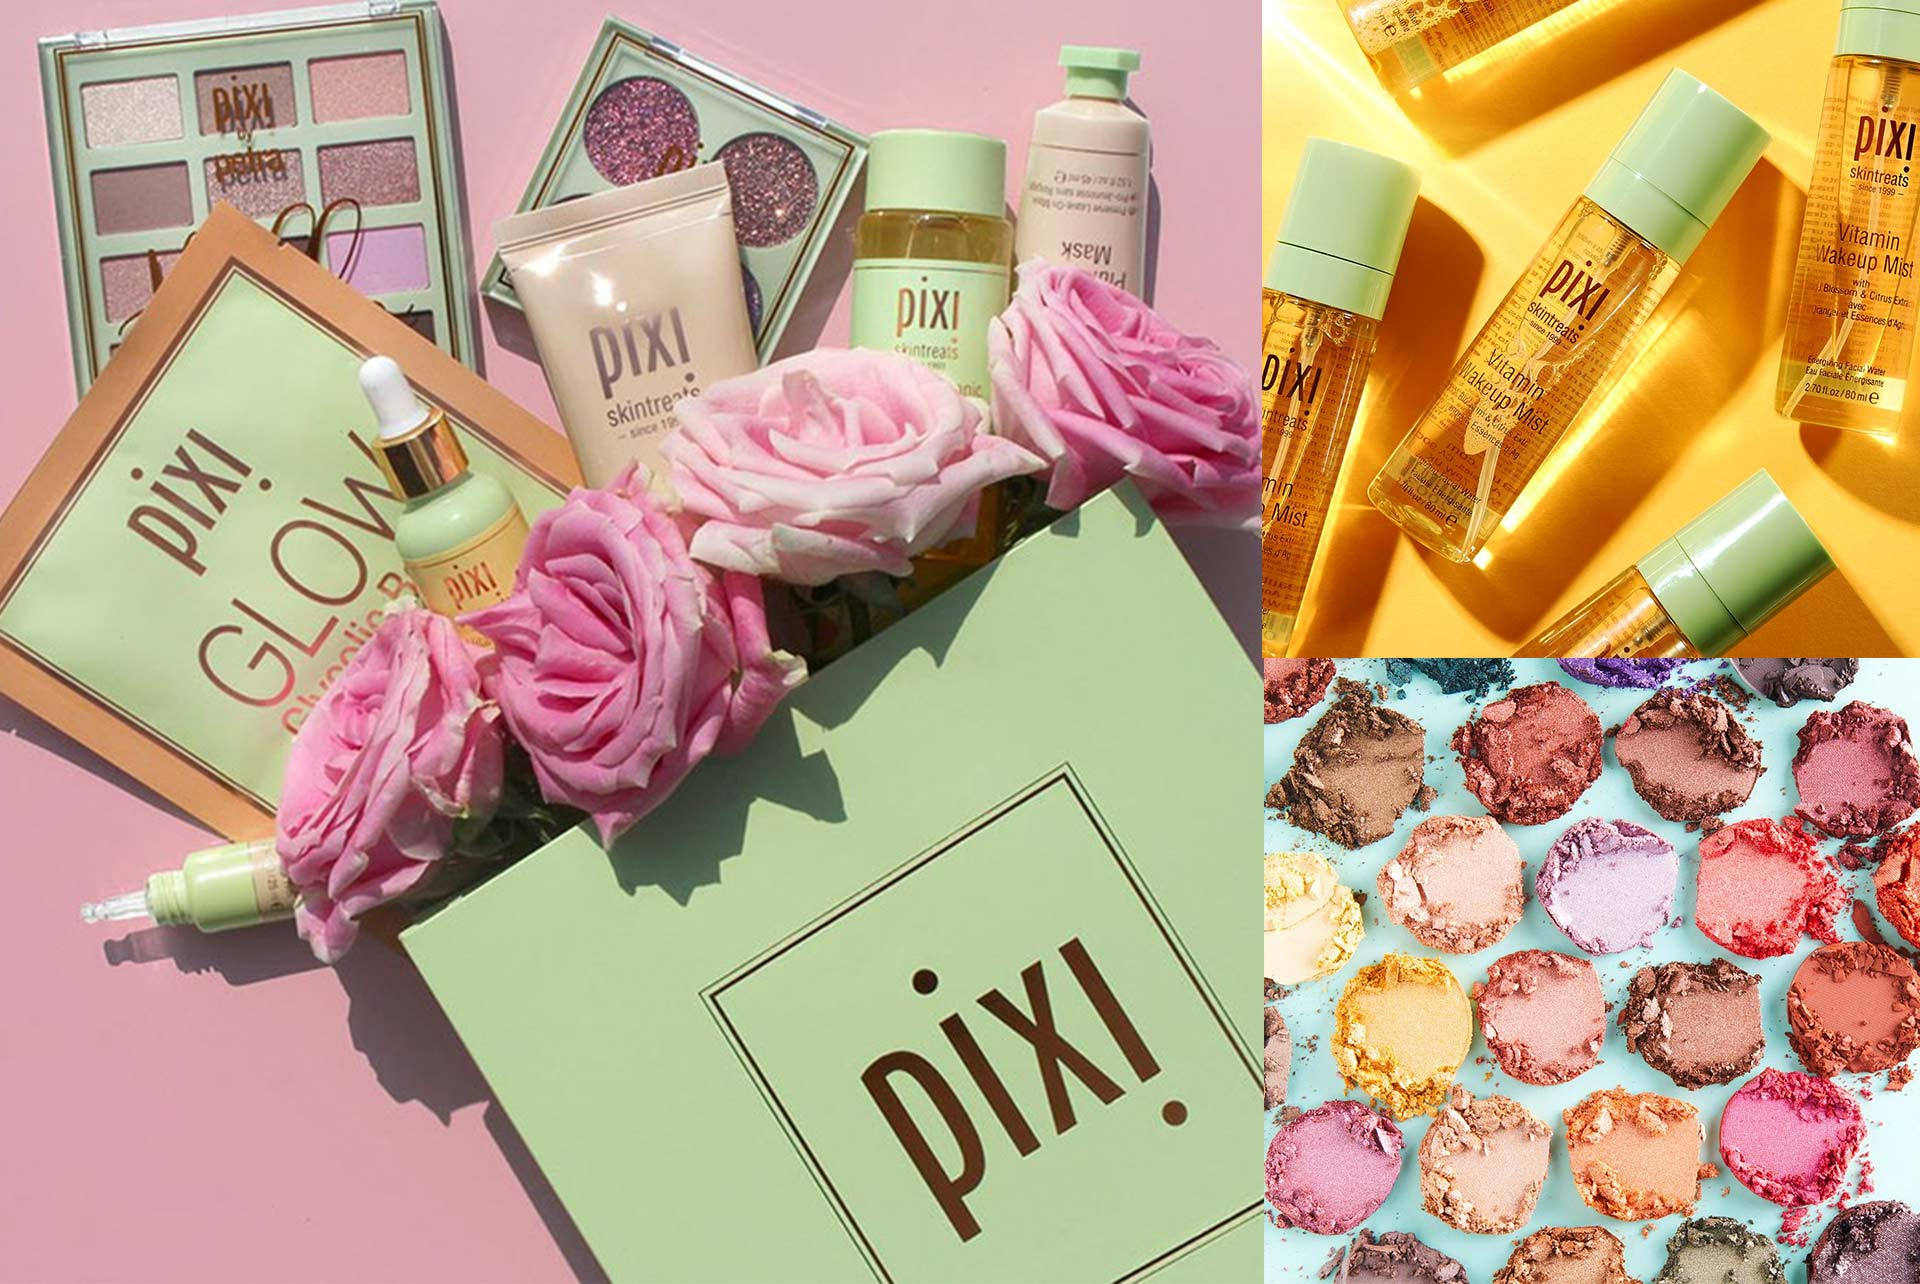 Is Pixi Cruelty-Free & Vegan?